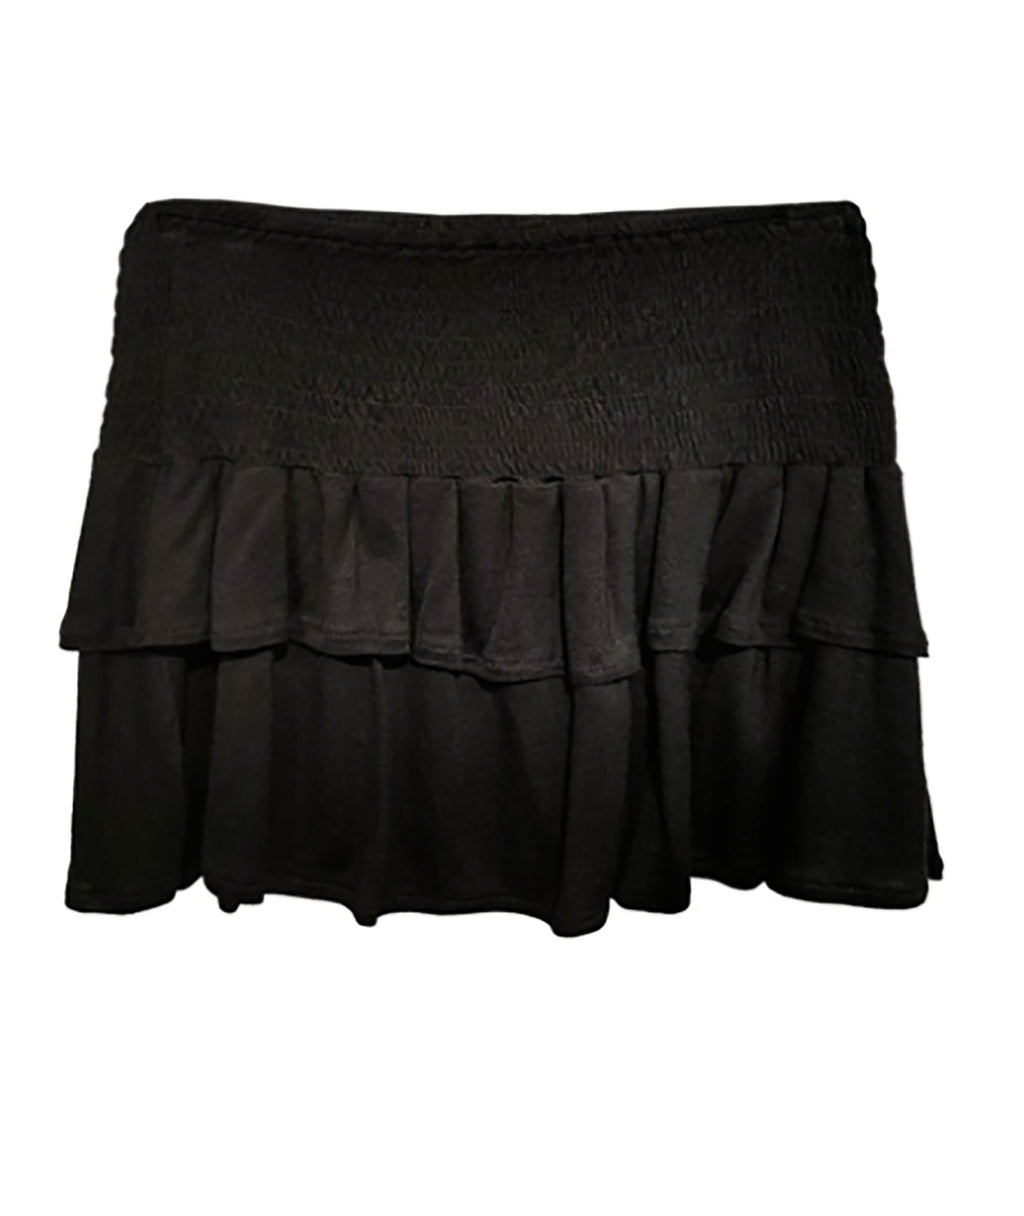 Me.n.u. Girls Black Smock Skirt